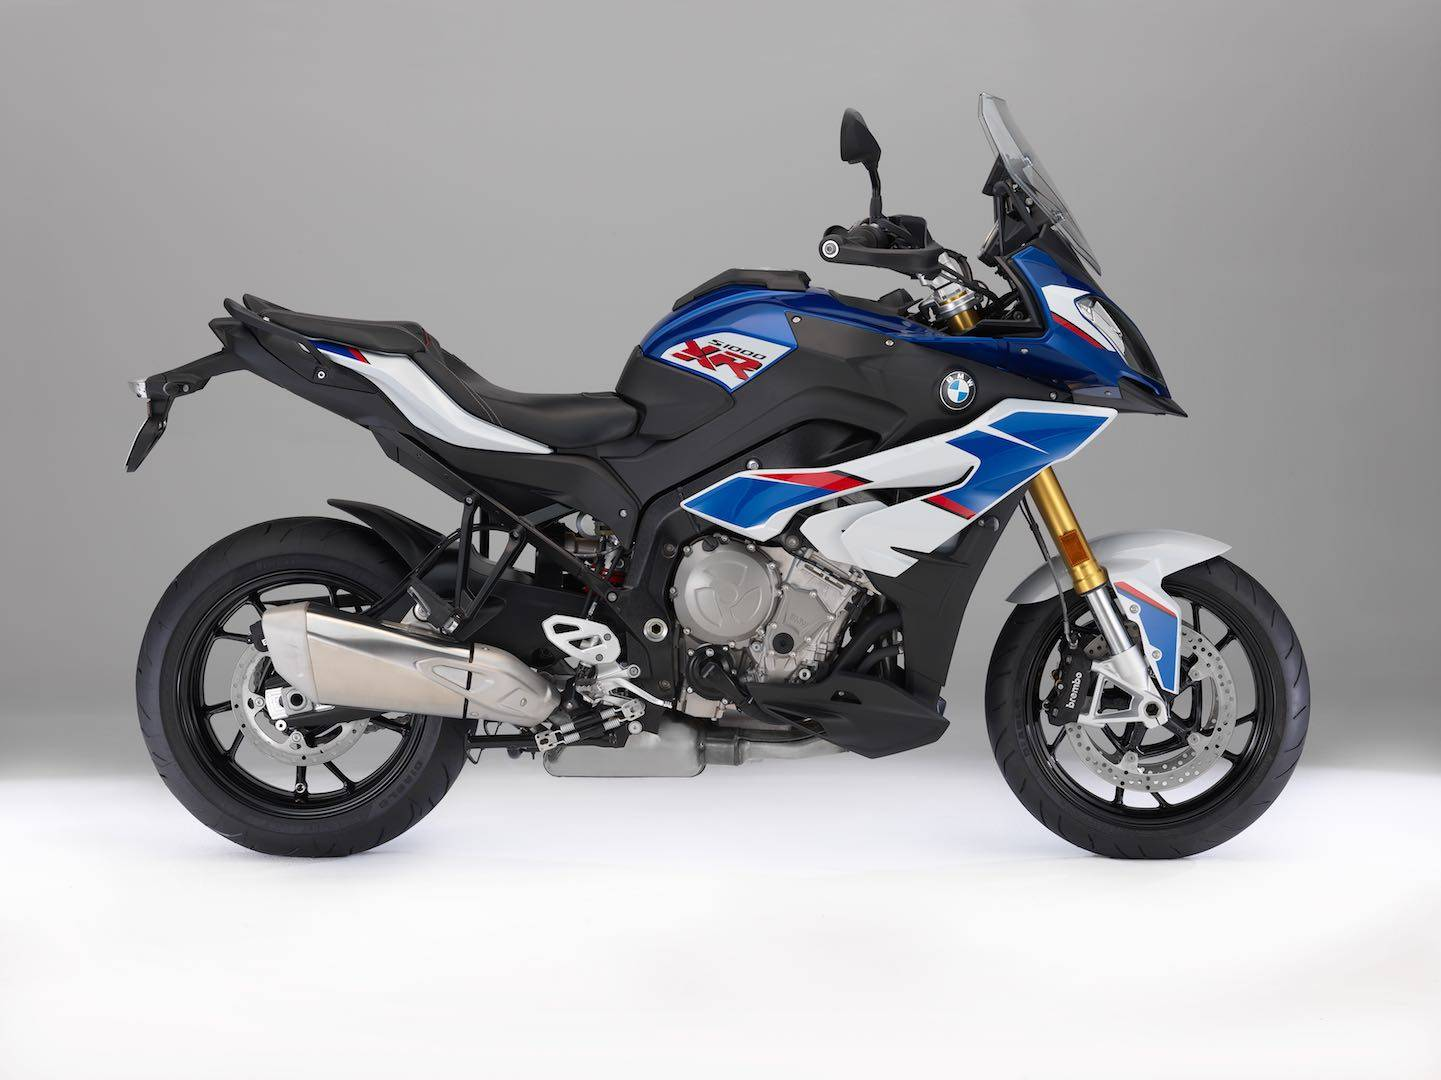 Bmw Pre Owned >> New 2018 BMW S1000XR Motorcycles in Tucson, AZ